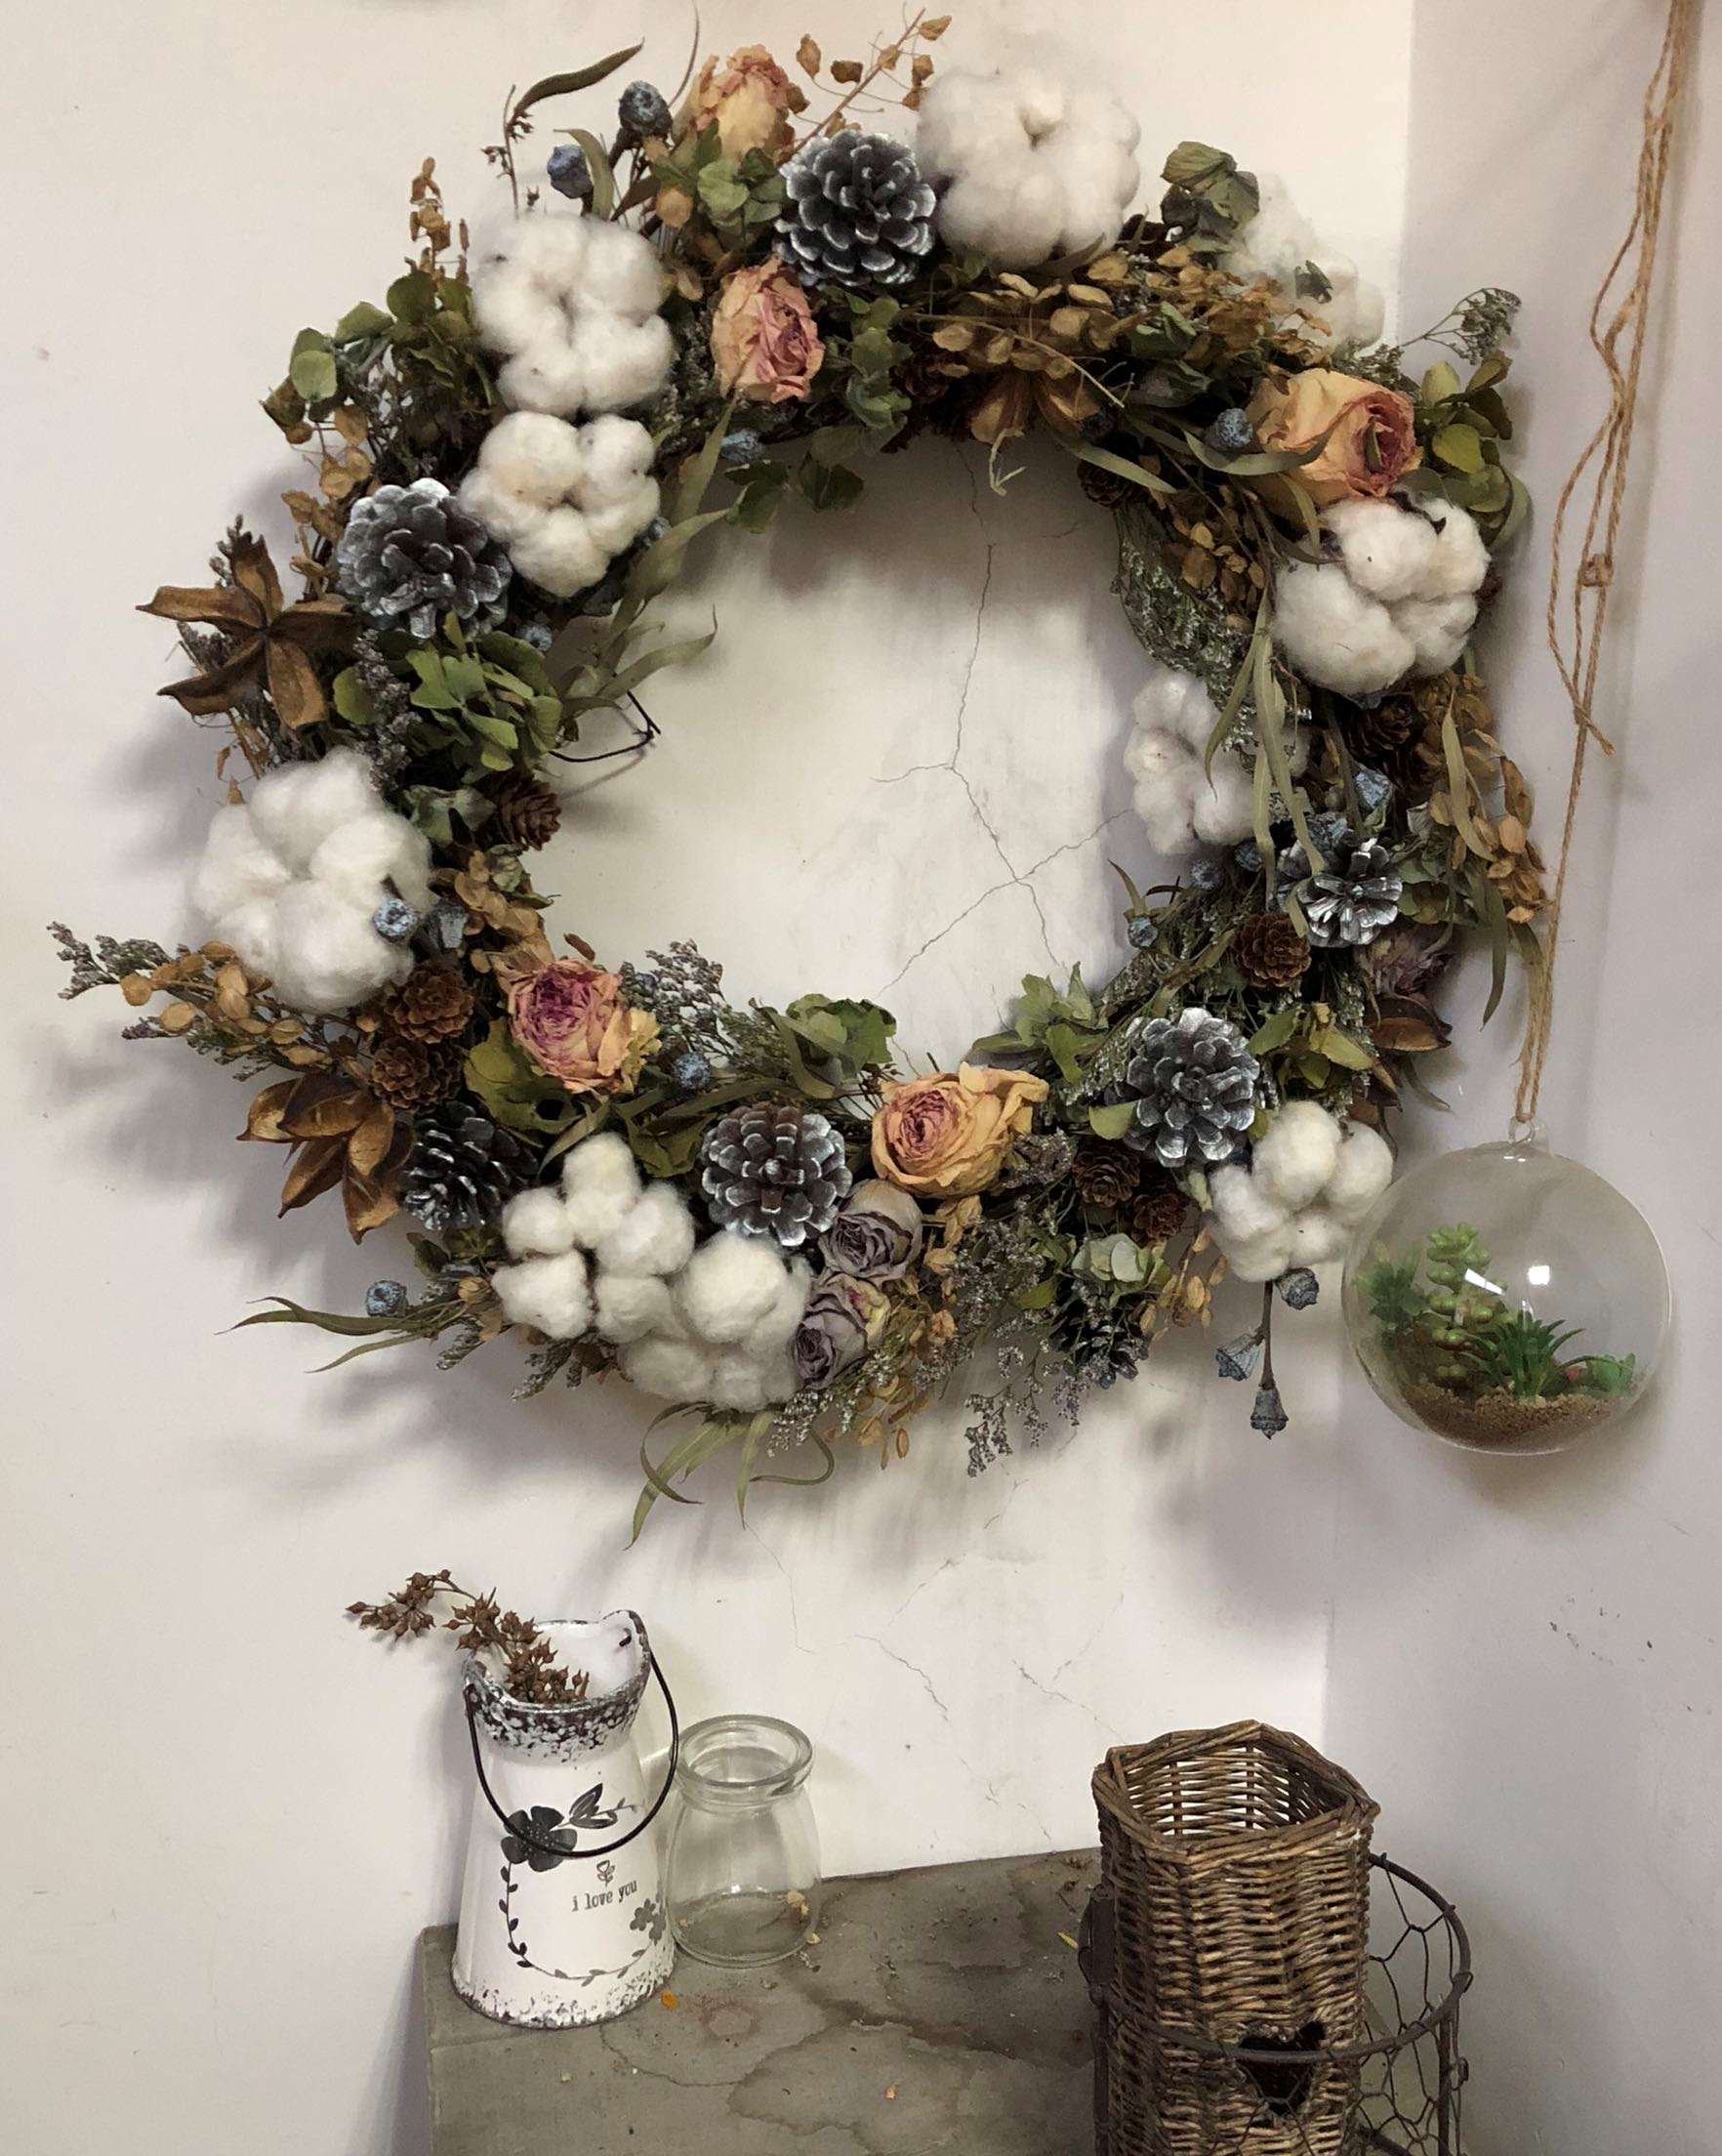 Rural retro pop beauty dry flower cotton rose pinecone Eucalyptus enlarged wreath wall decoration studio shooting background